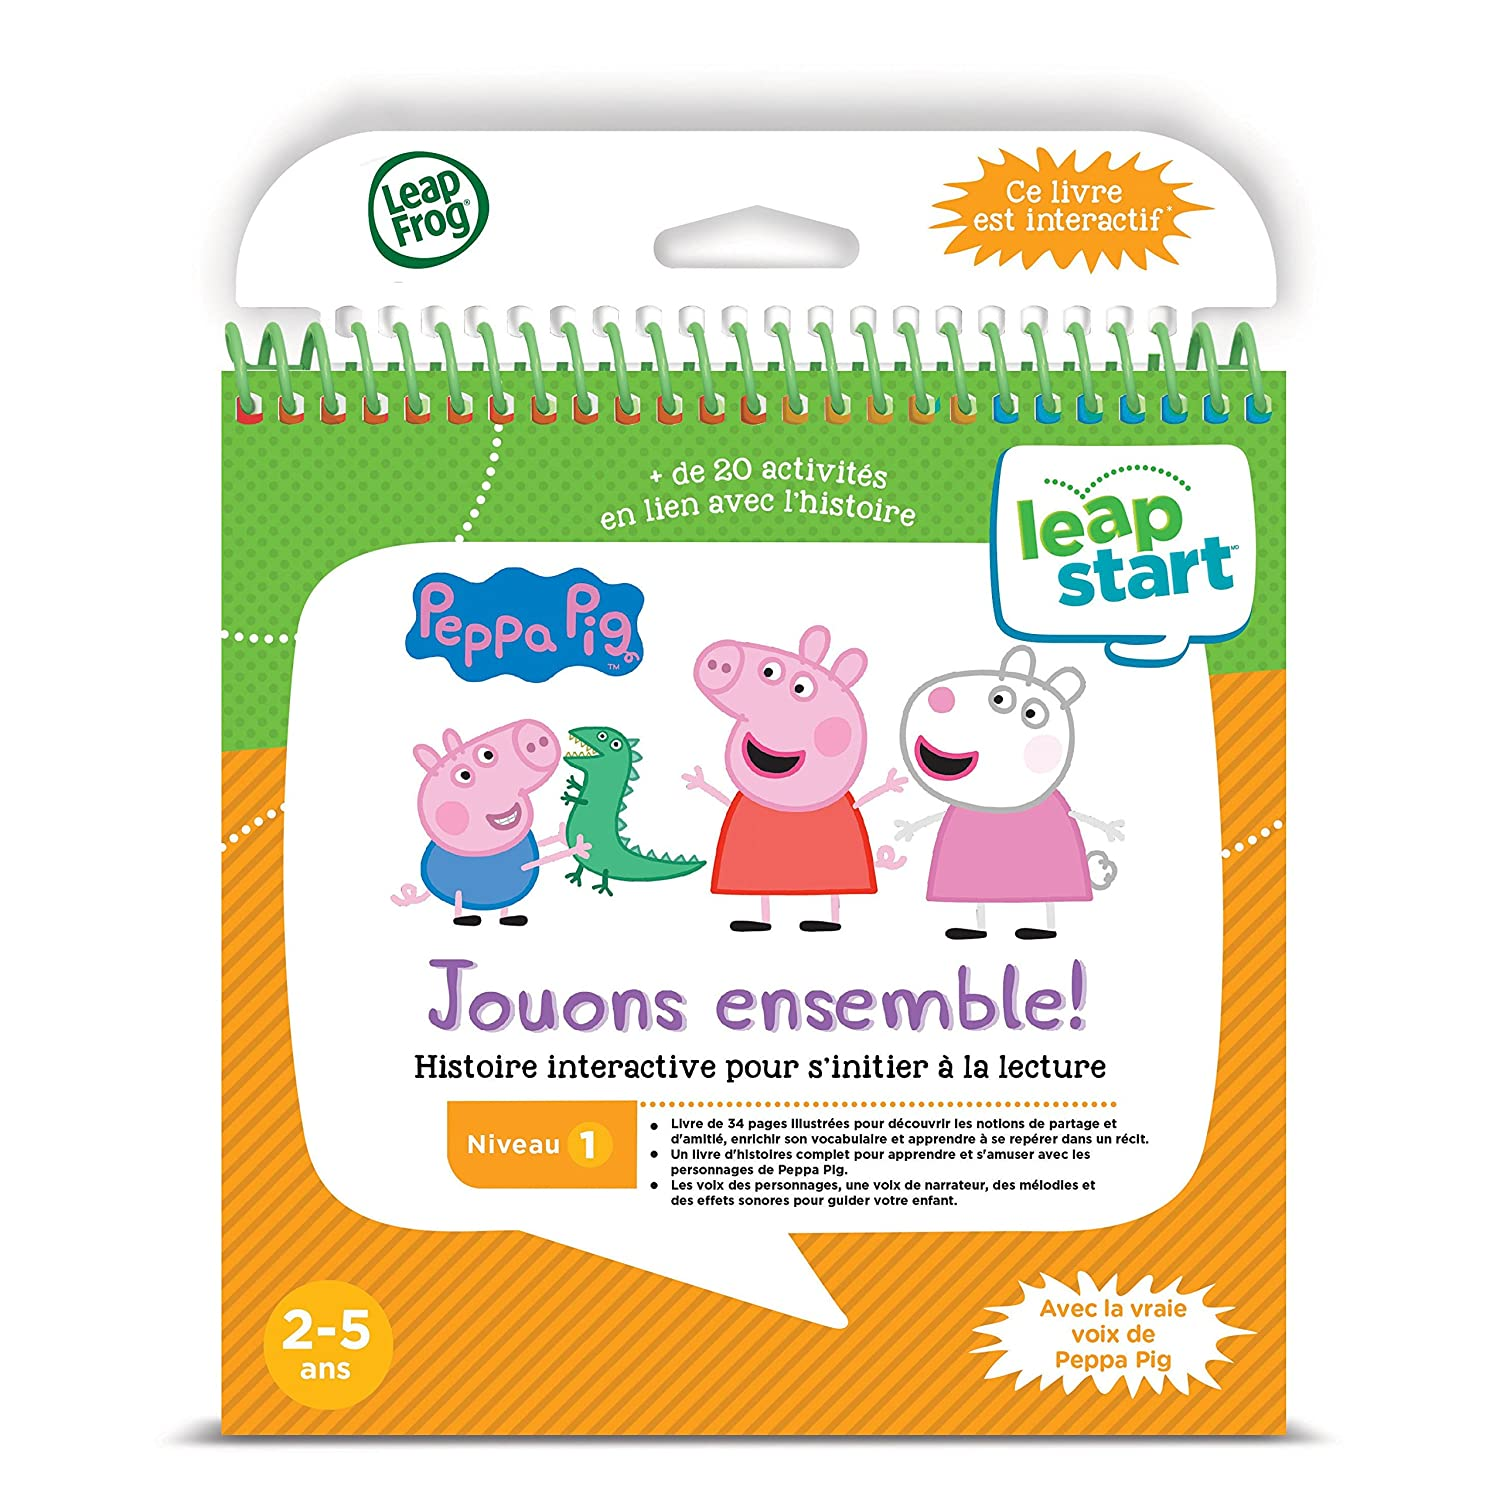 Leapfrog Leapstart Peppa Pig Playing Together Storybook French